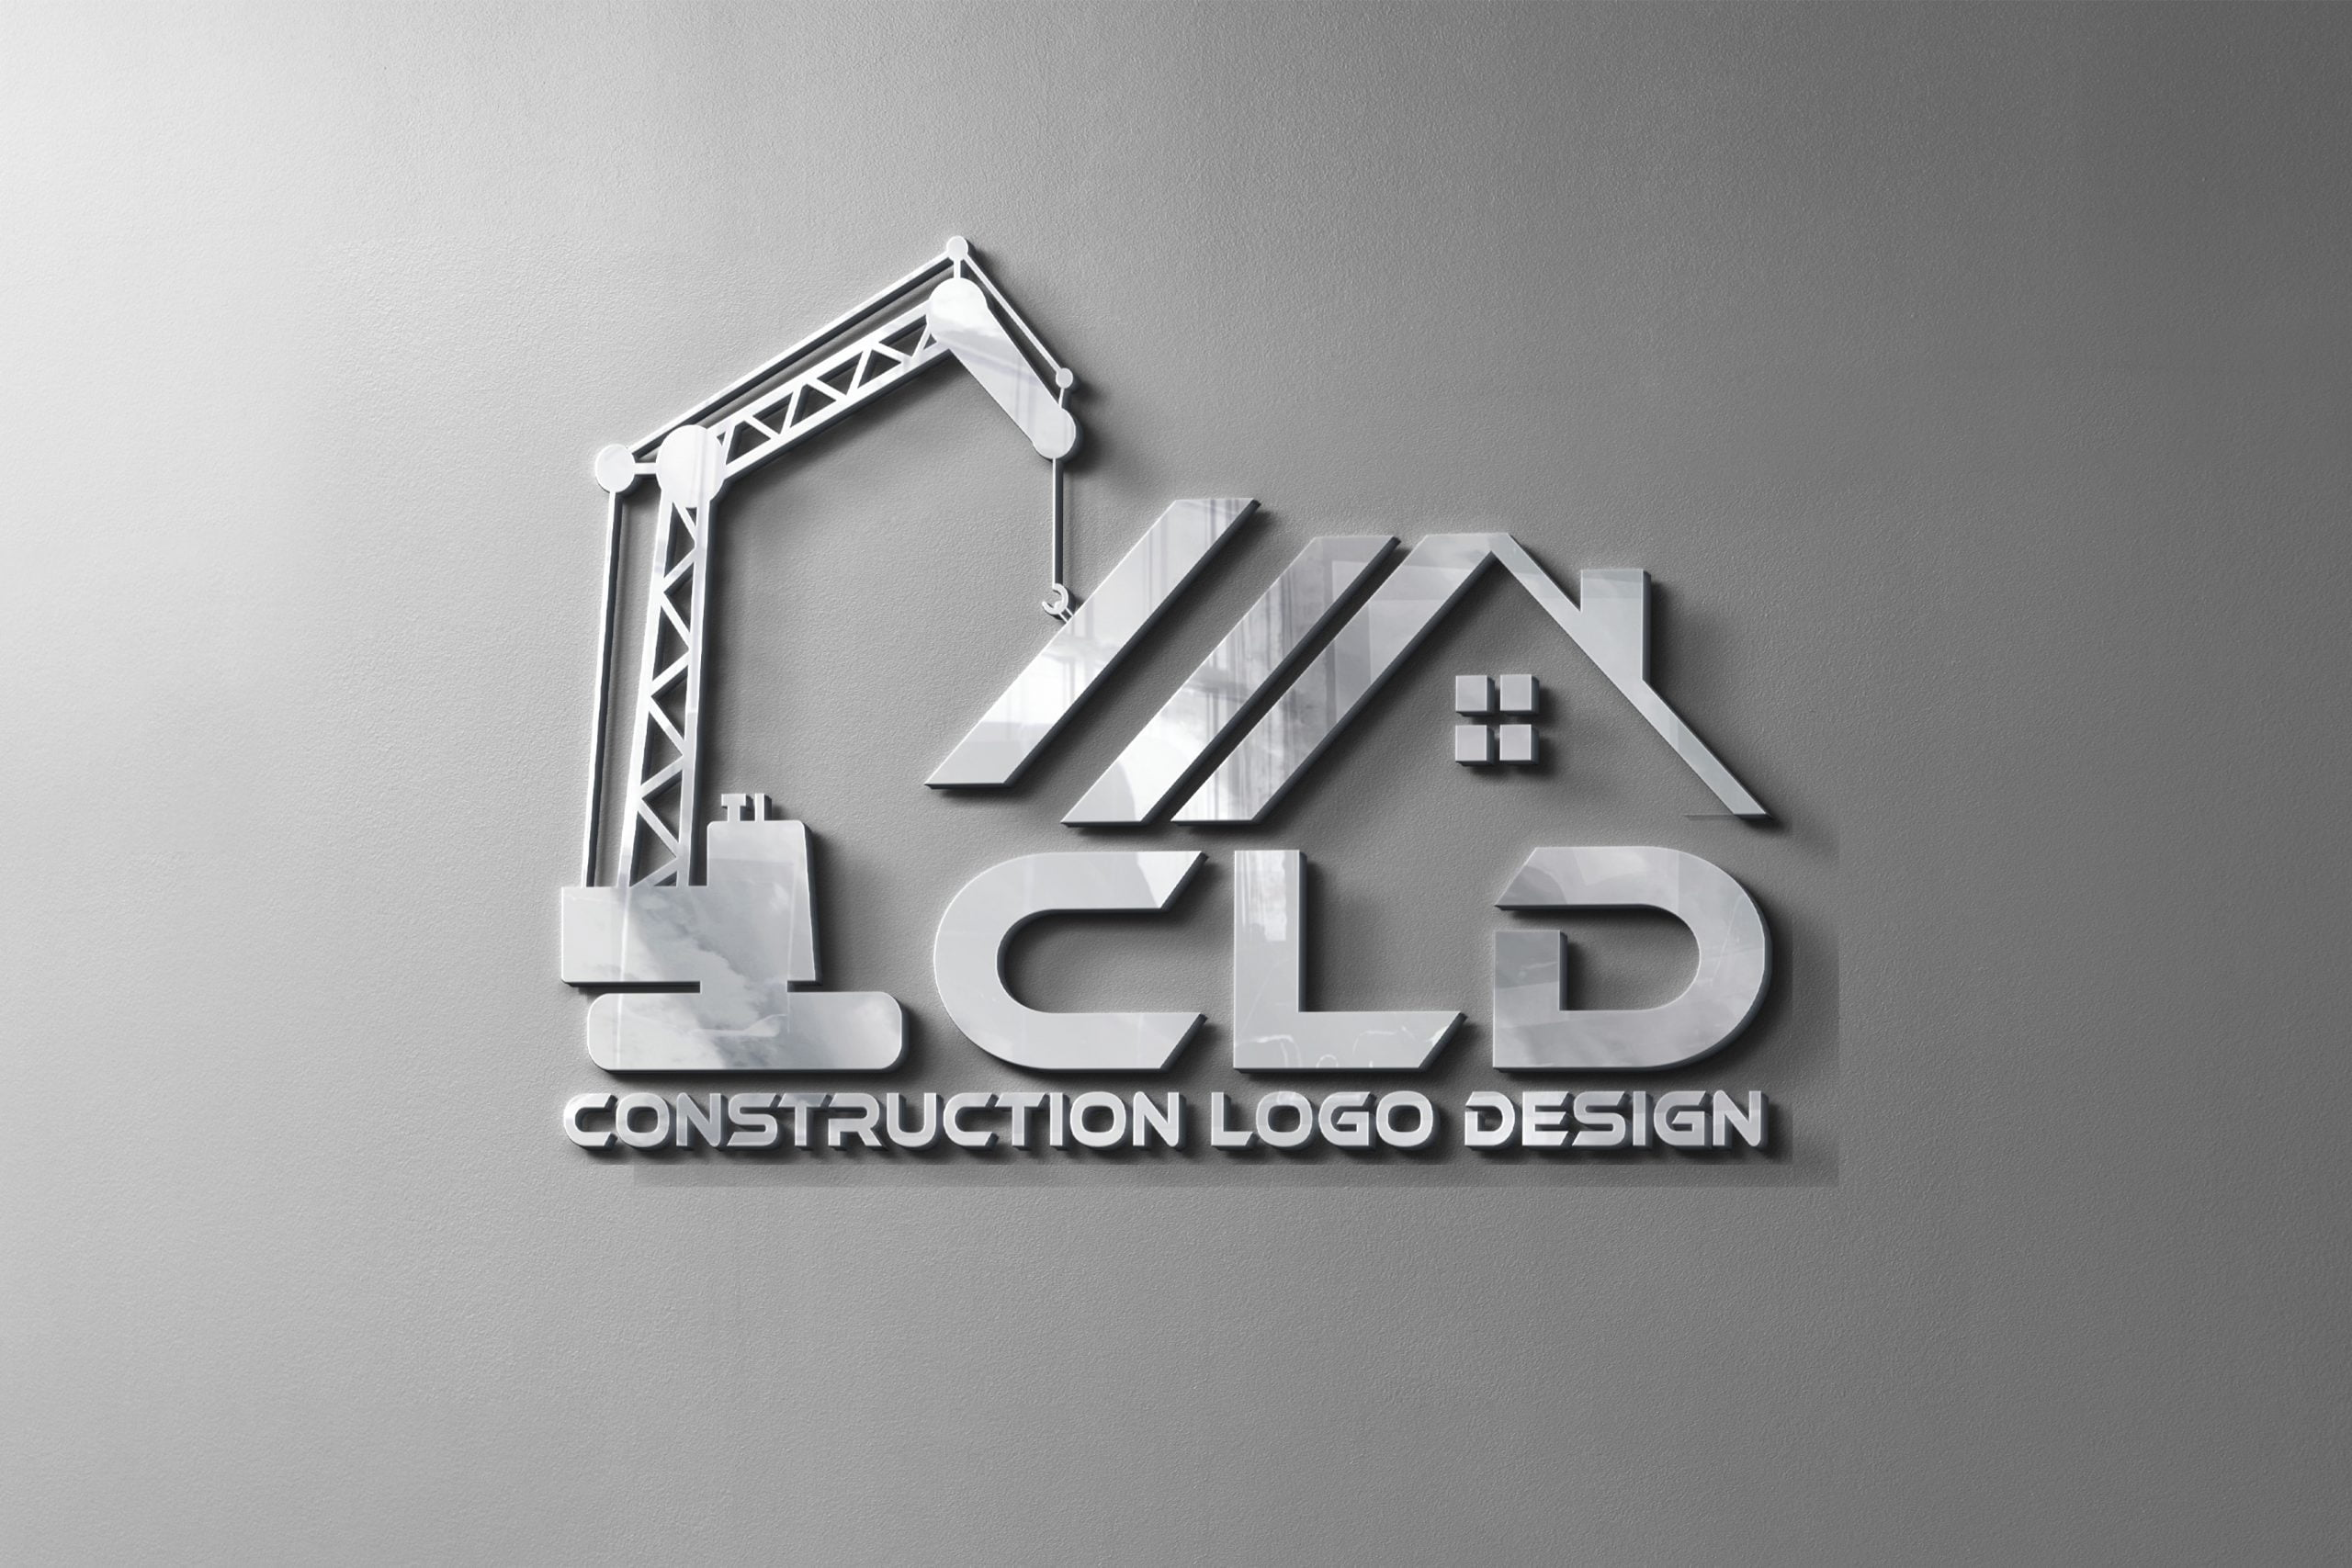 Construction Logo Design Free psd